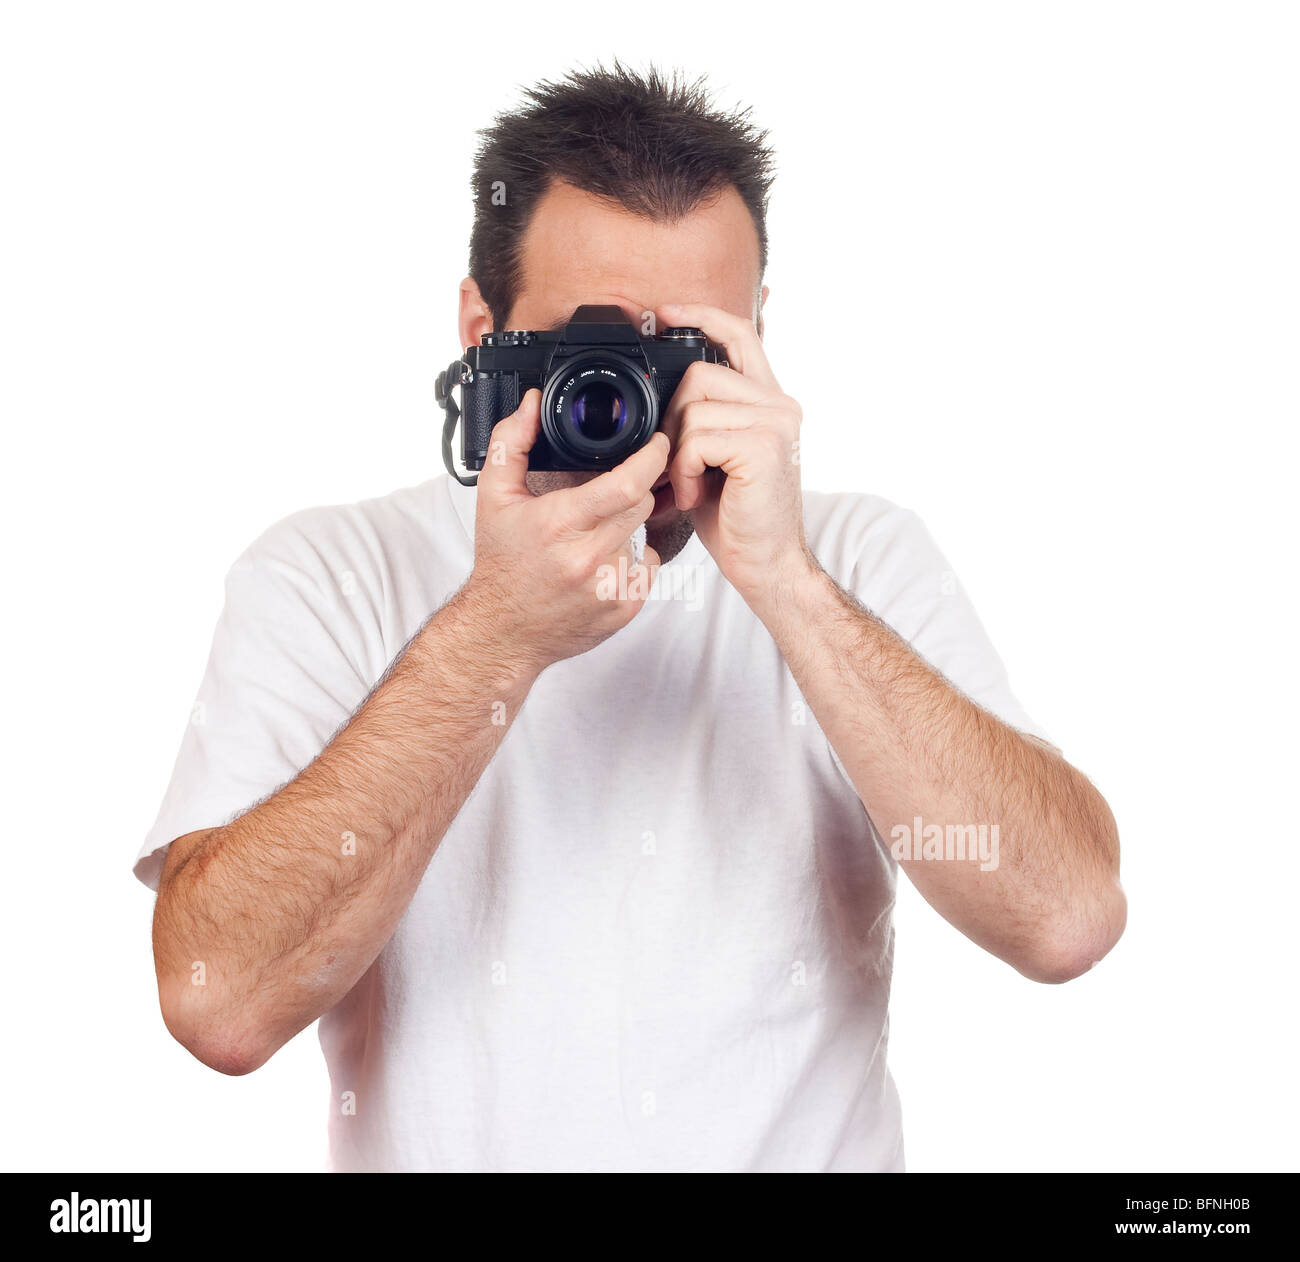 a photographer with a vintage analogic photographic camera isolated on withe background - Stock Image